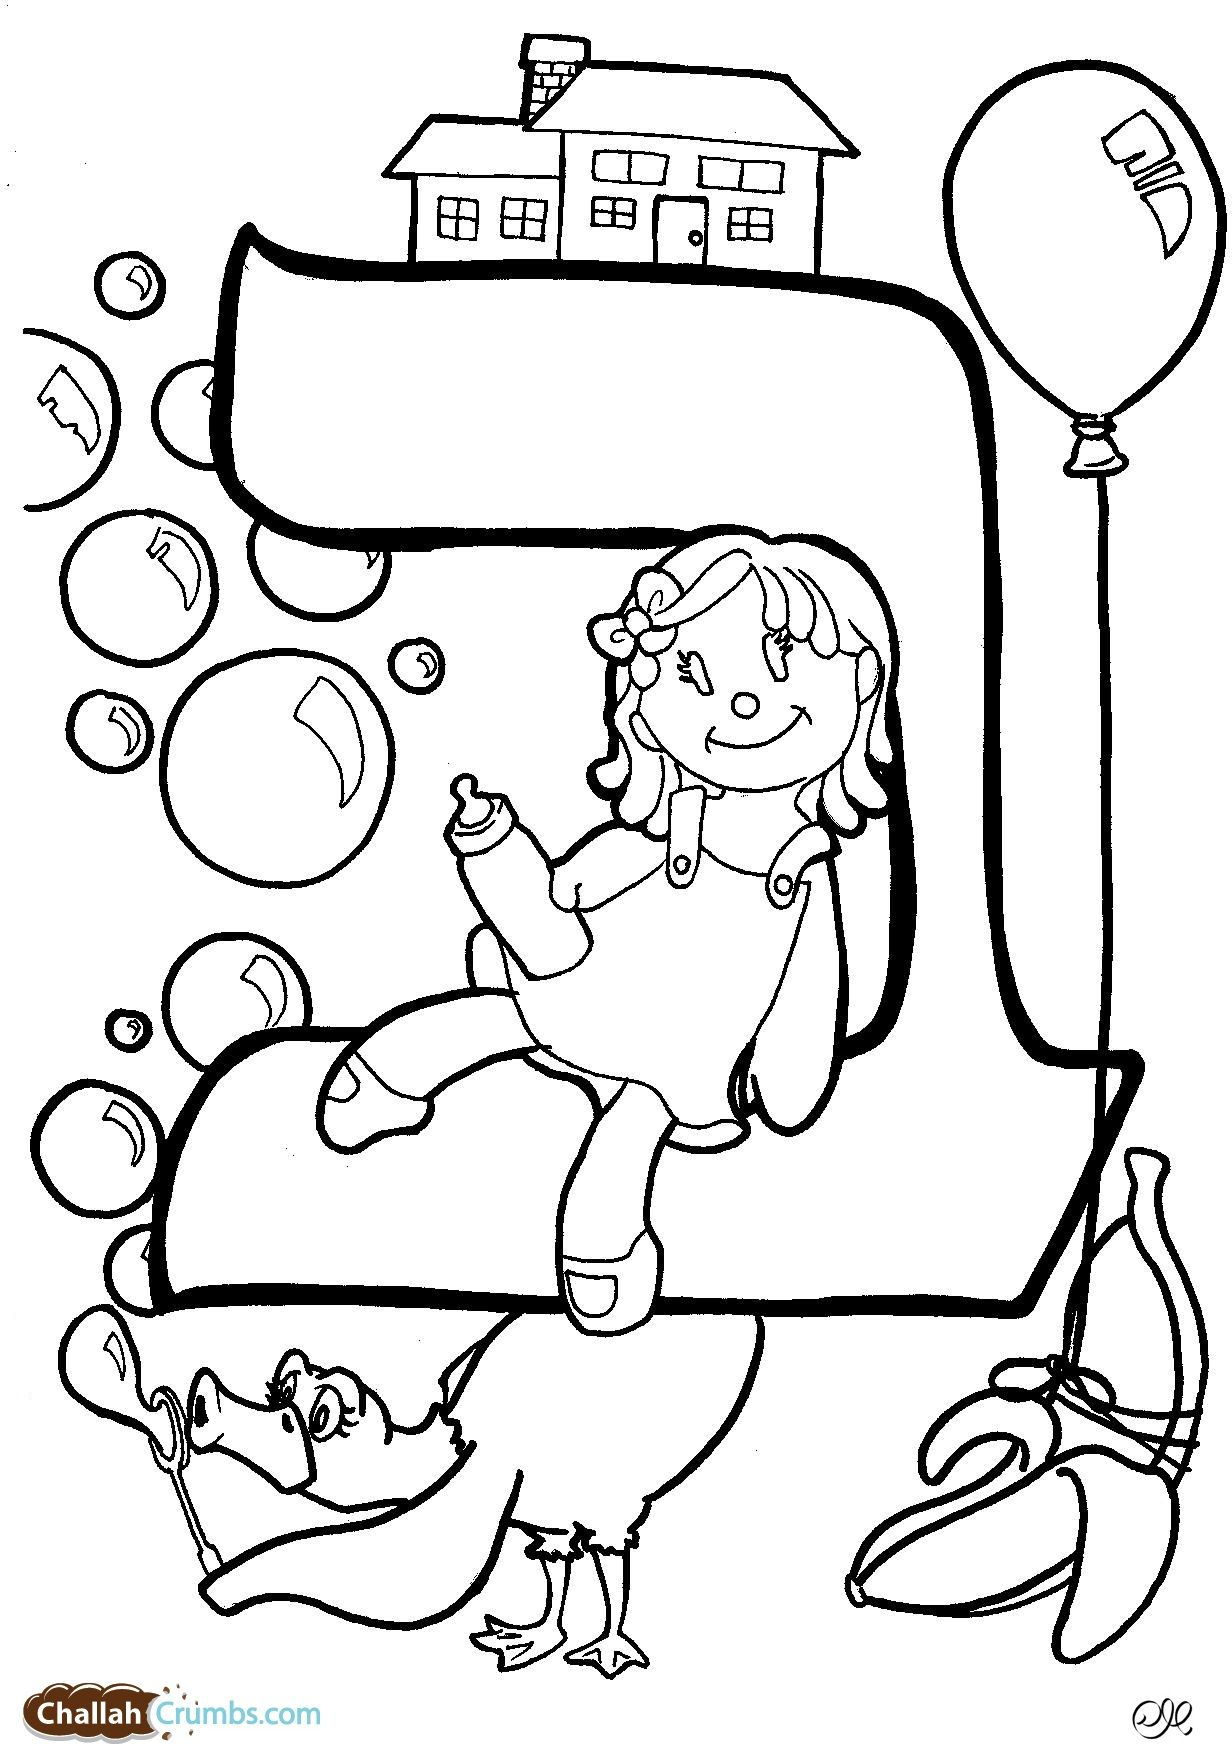 challahcrumbs coloring pages